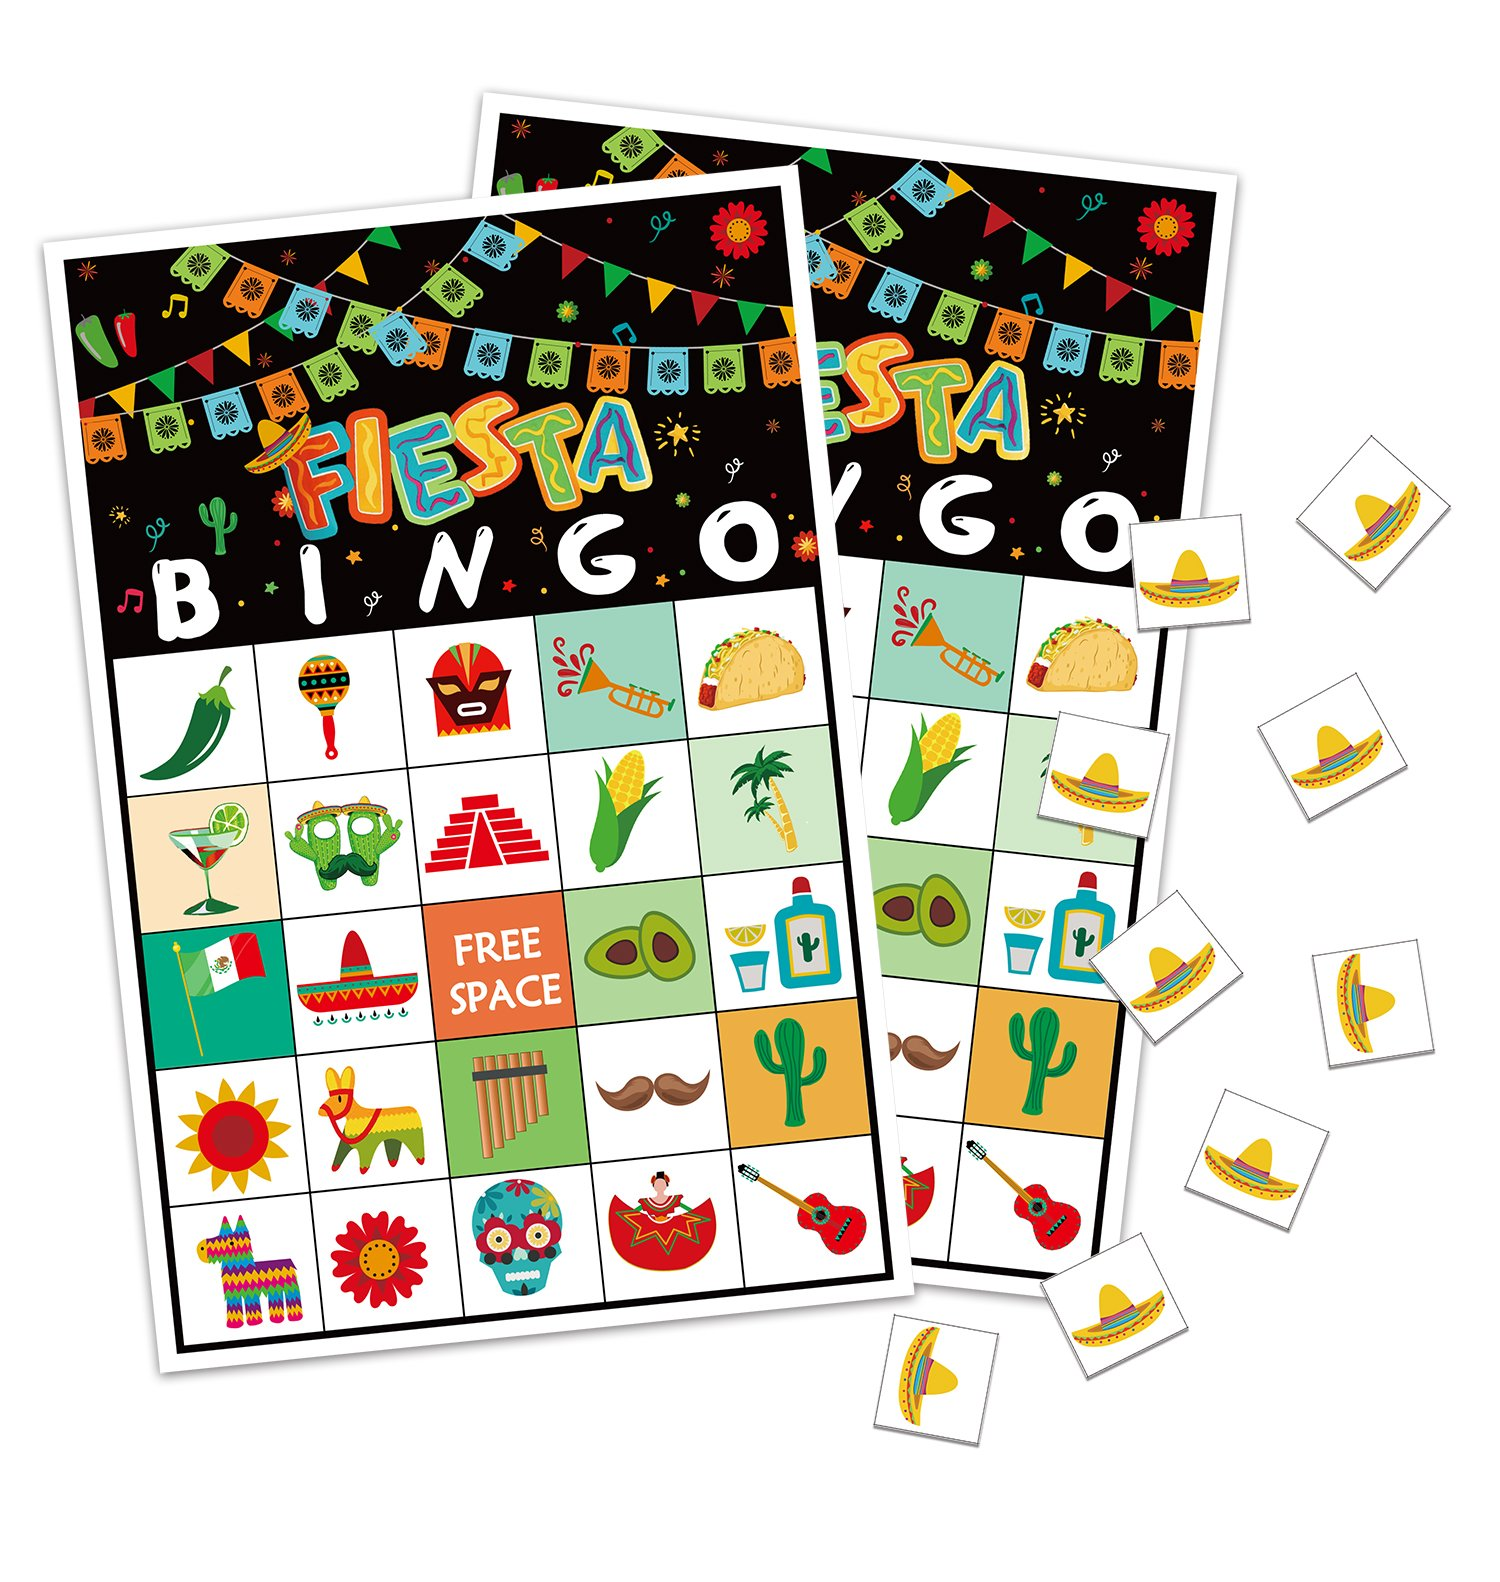 Cinco de Mayo Bingo Game - Fiesta Mexican Birthday Party Supplies (24 Players) by jollylife